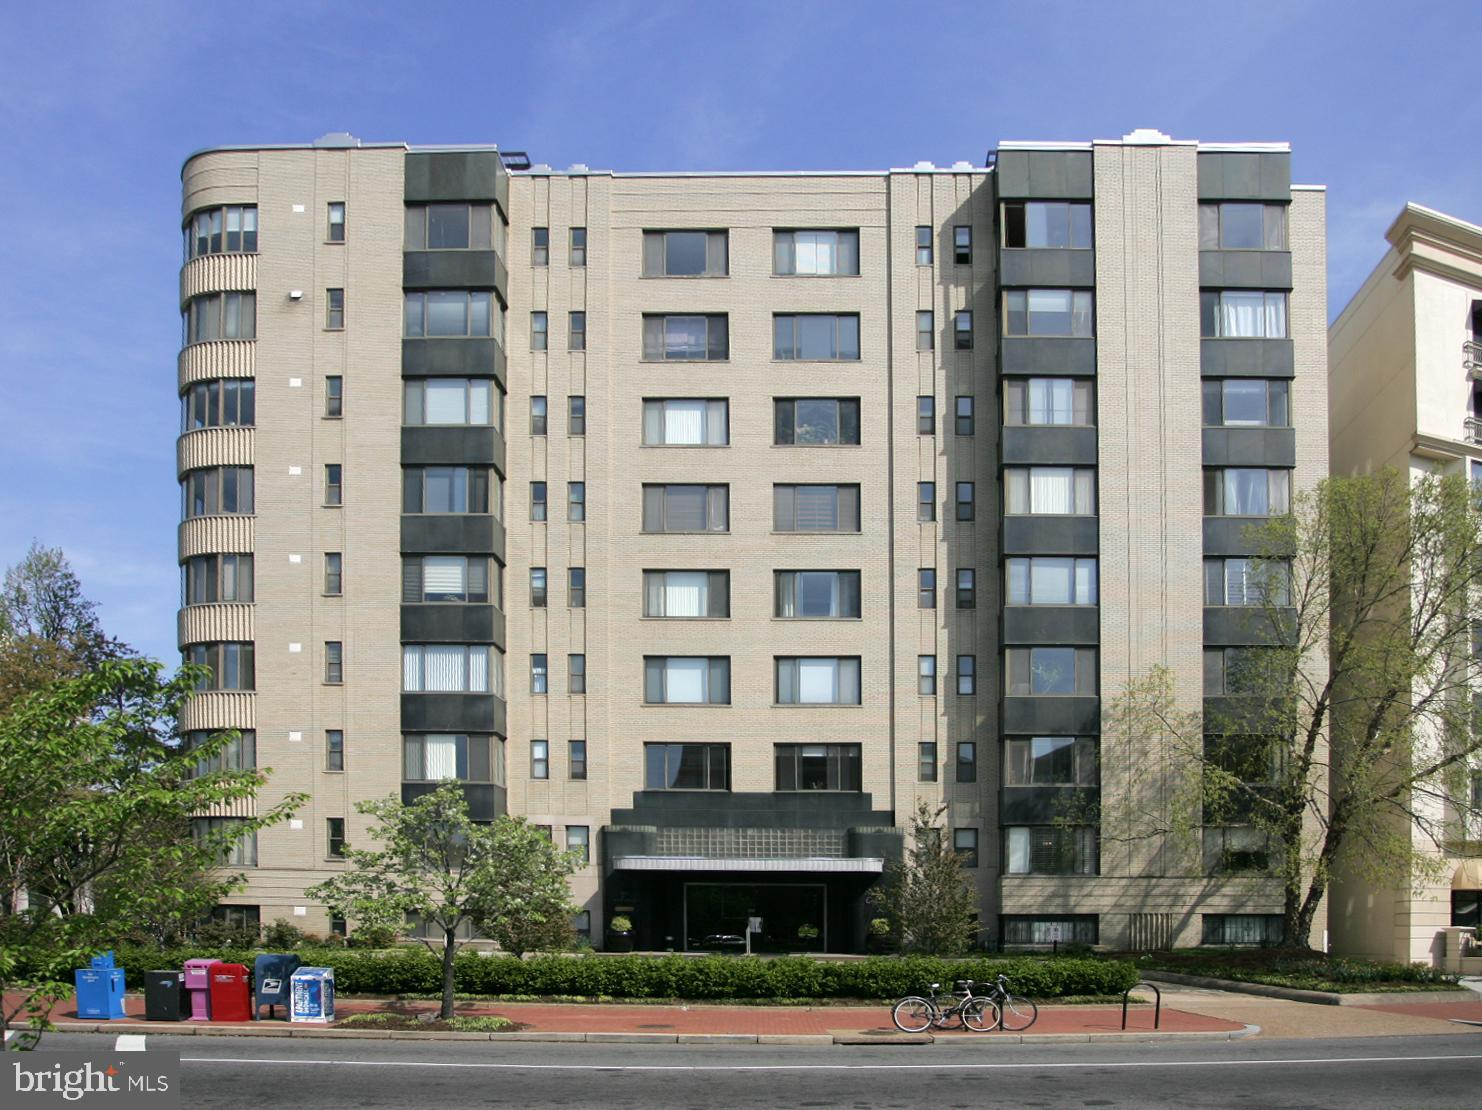 Welcome home! A spacious and beautifully updated 1 bedroom condo in the General Scott building! Unit